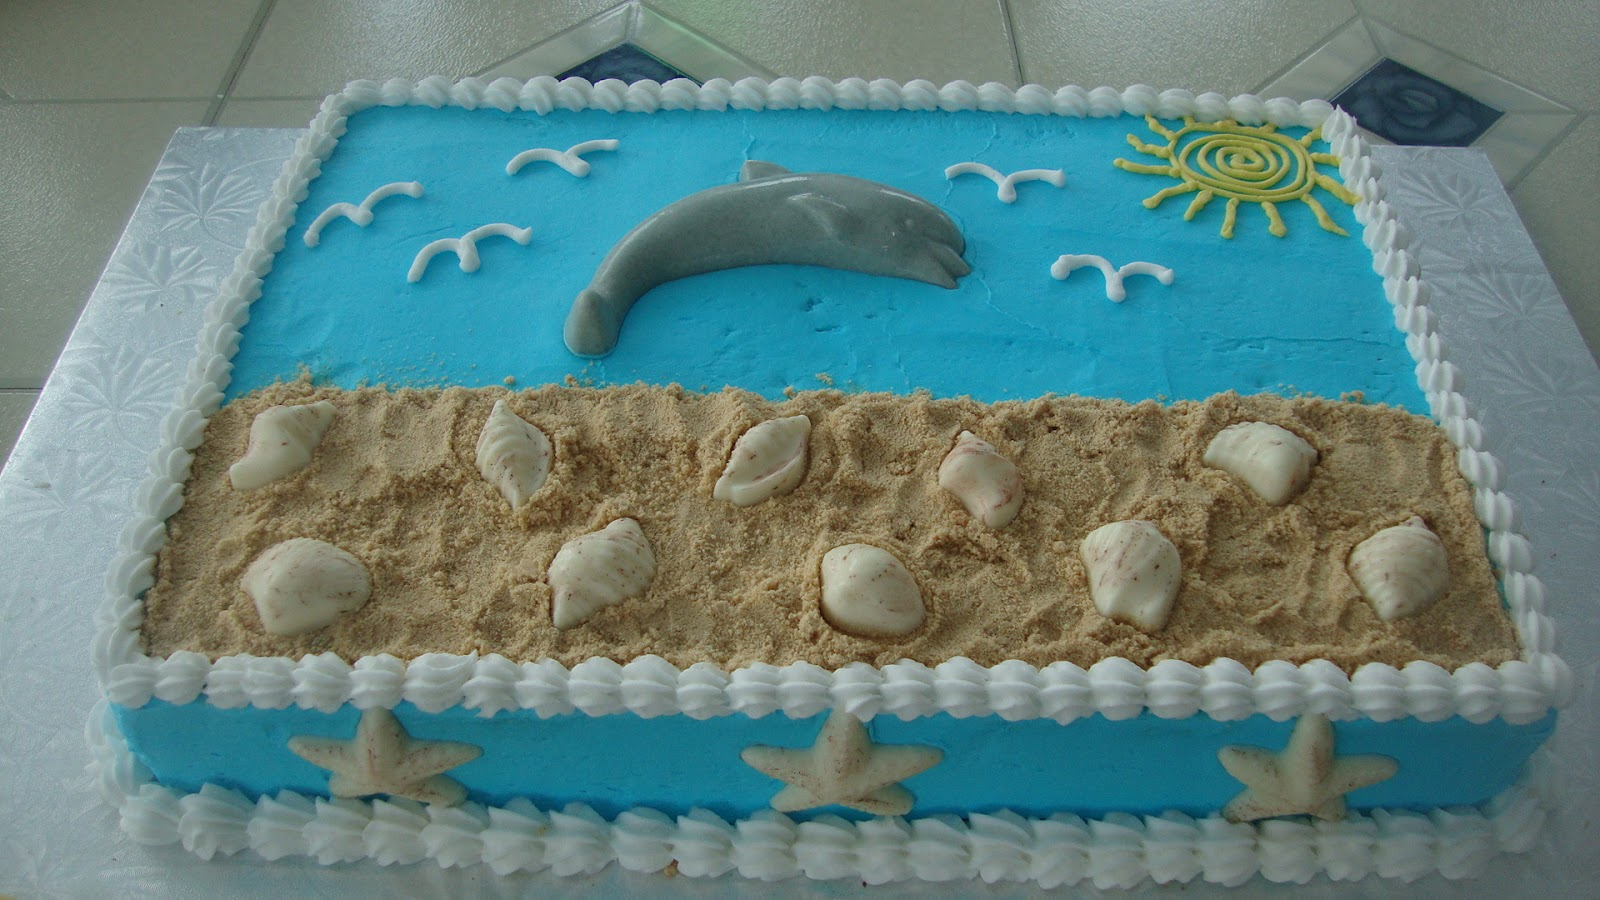 Charity's Sunshine Sweets: DOLPHIN CAKE